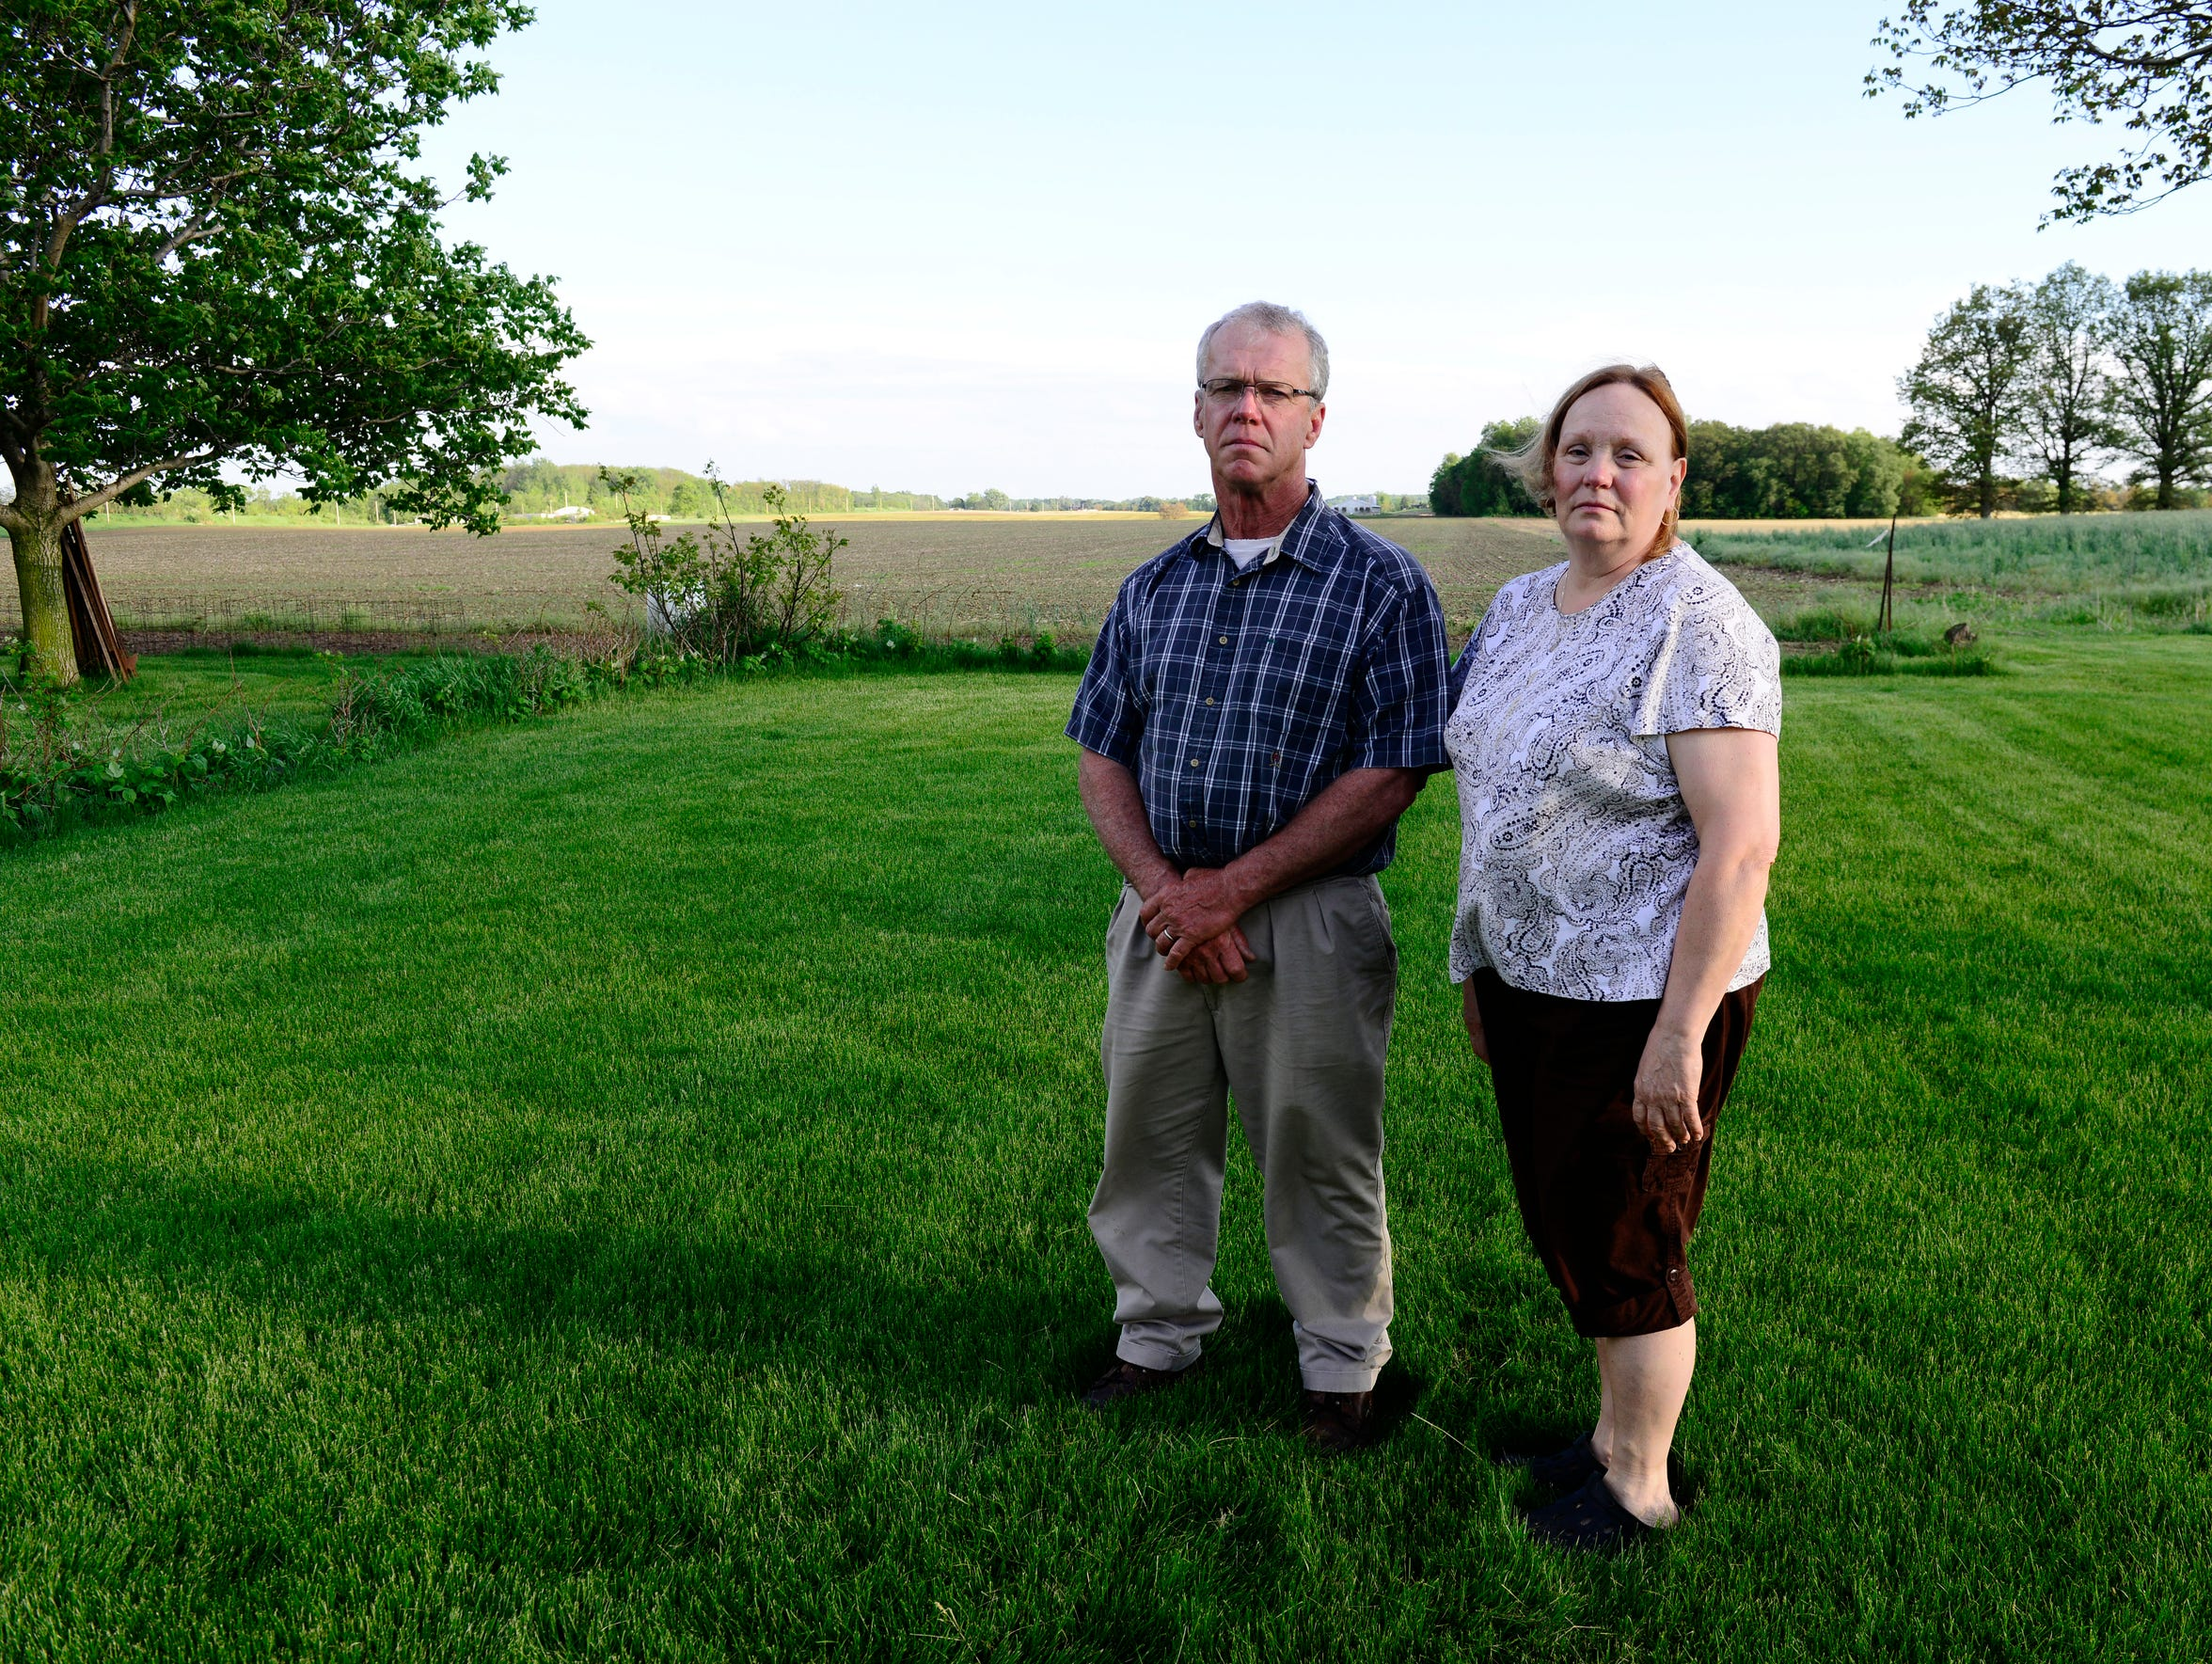 Nelson and Ann Wright say the quiet, peaceful setting